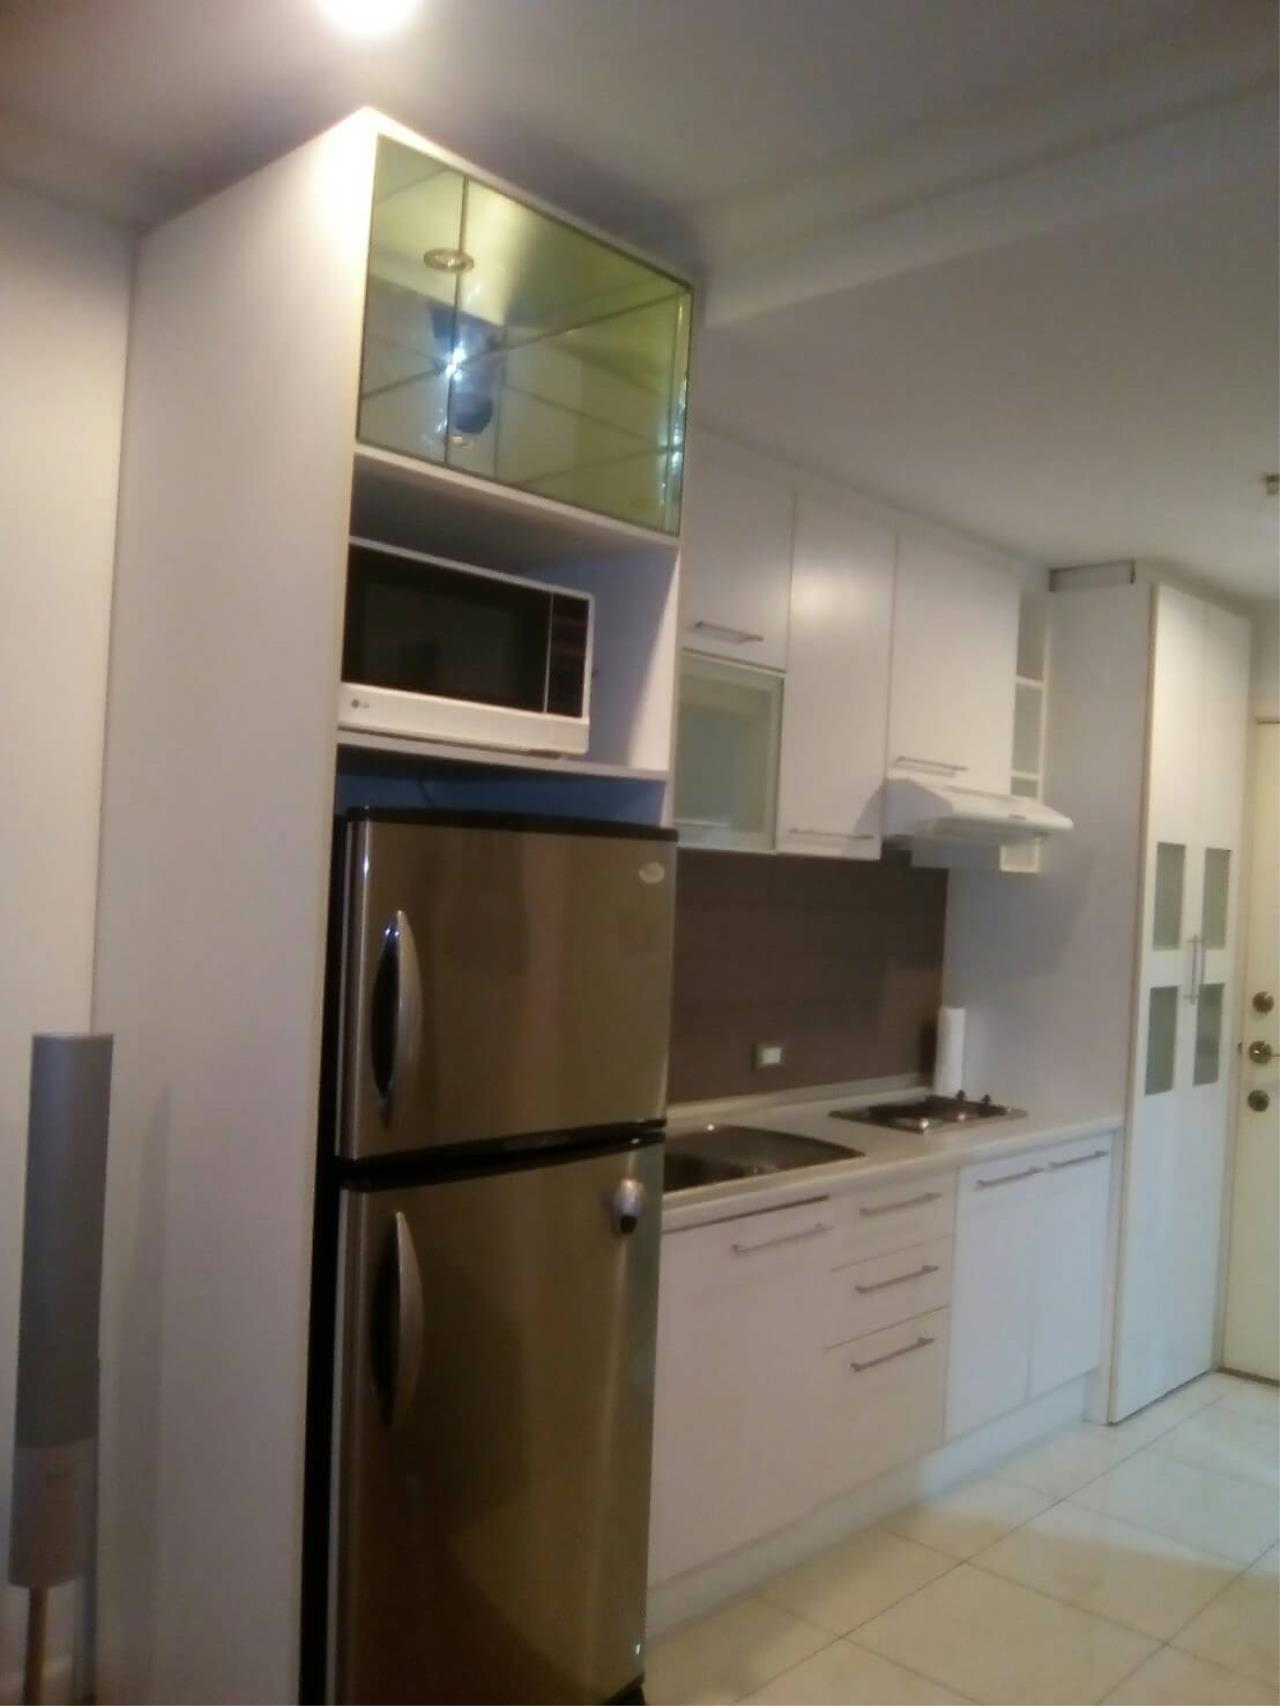 RE/MAX CondoDee Agency's Grand Park View Asoke - For Rent-18,000 THB/month 6